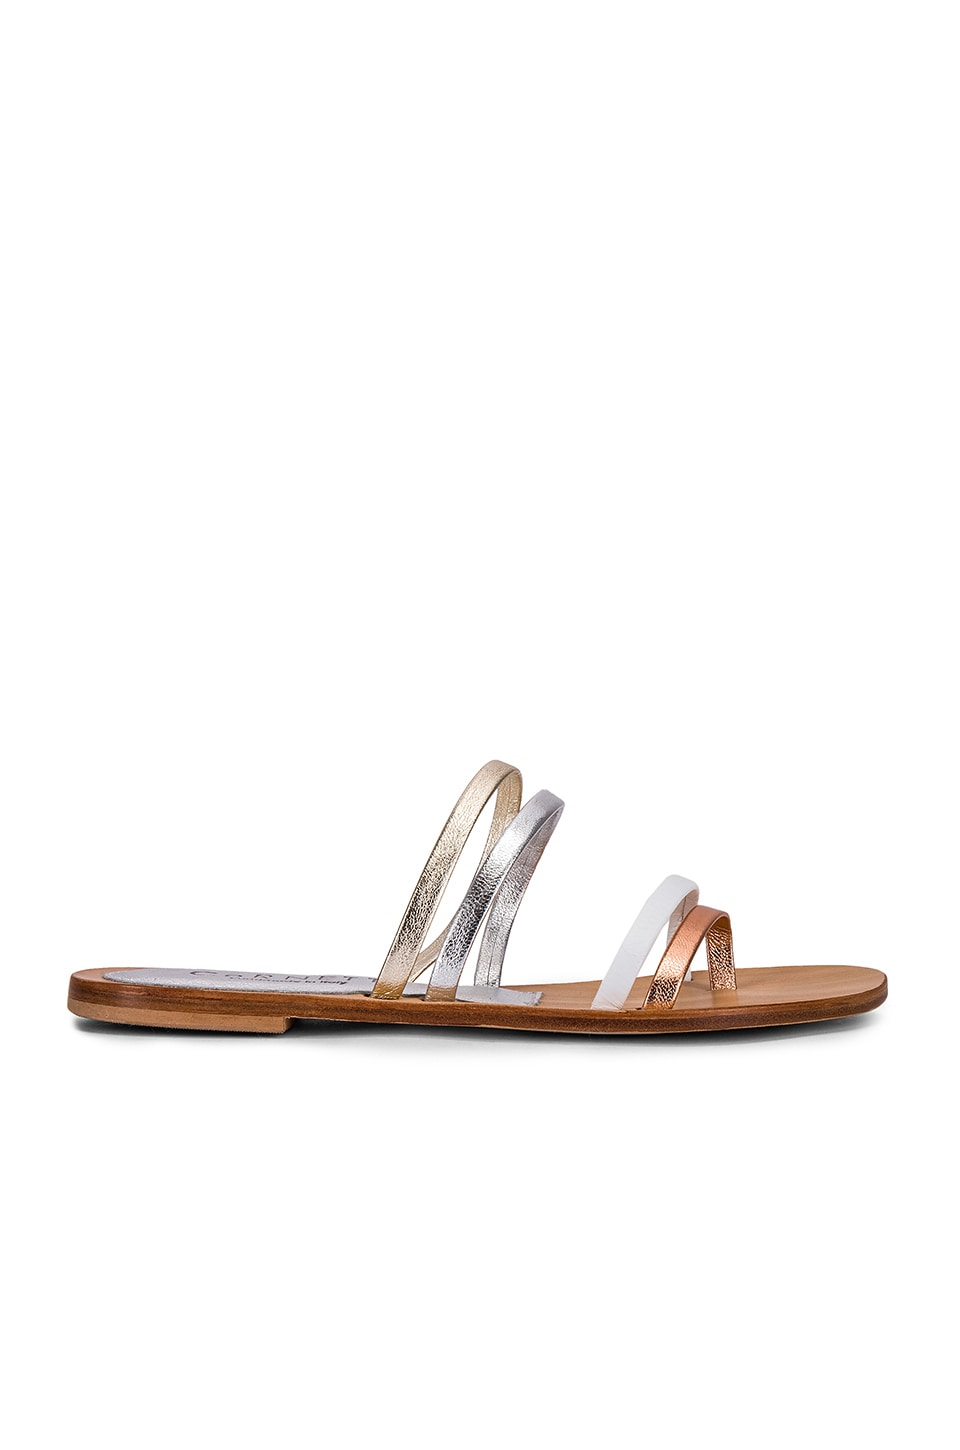 CoRNETTI Zannone Sandal in White & Metallic